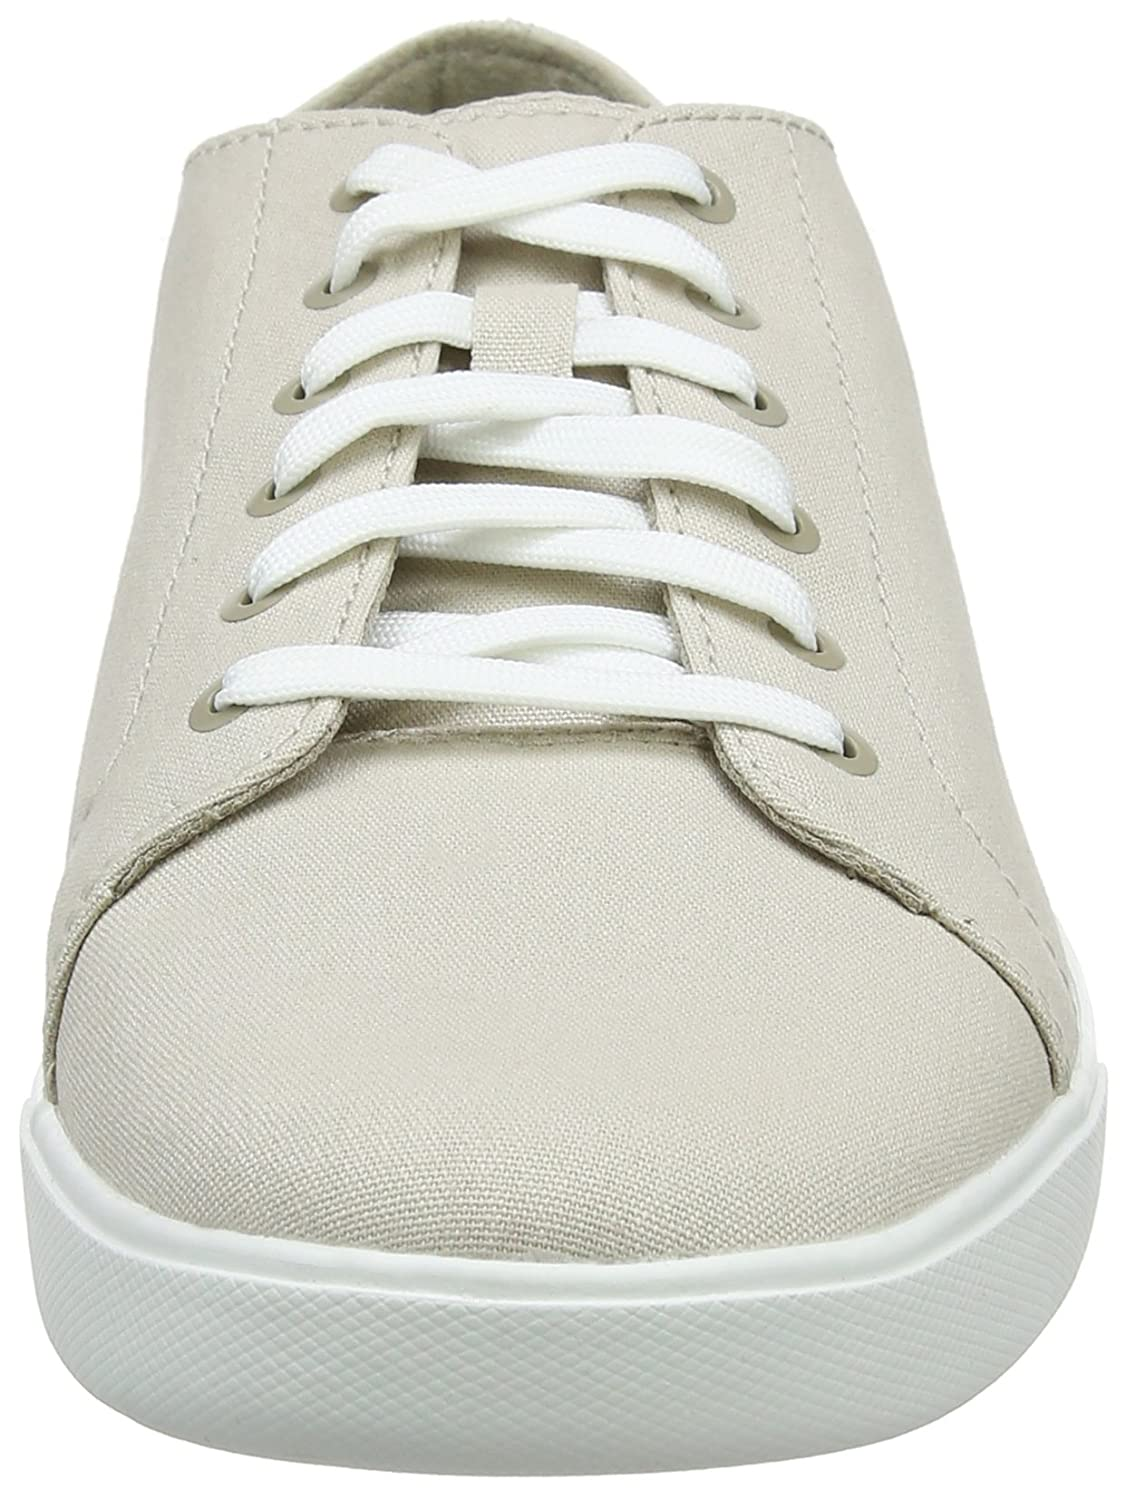 Timberland Bayham, Zapatos de Cordones Oxford para Hombre, Blanco (Rainy Day Canvas F48), 45 EU